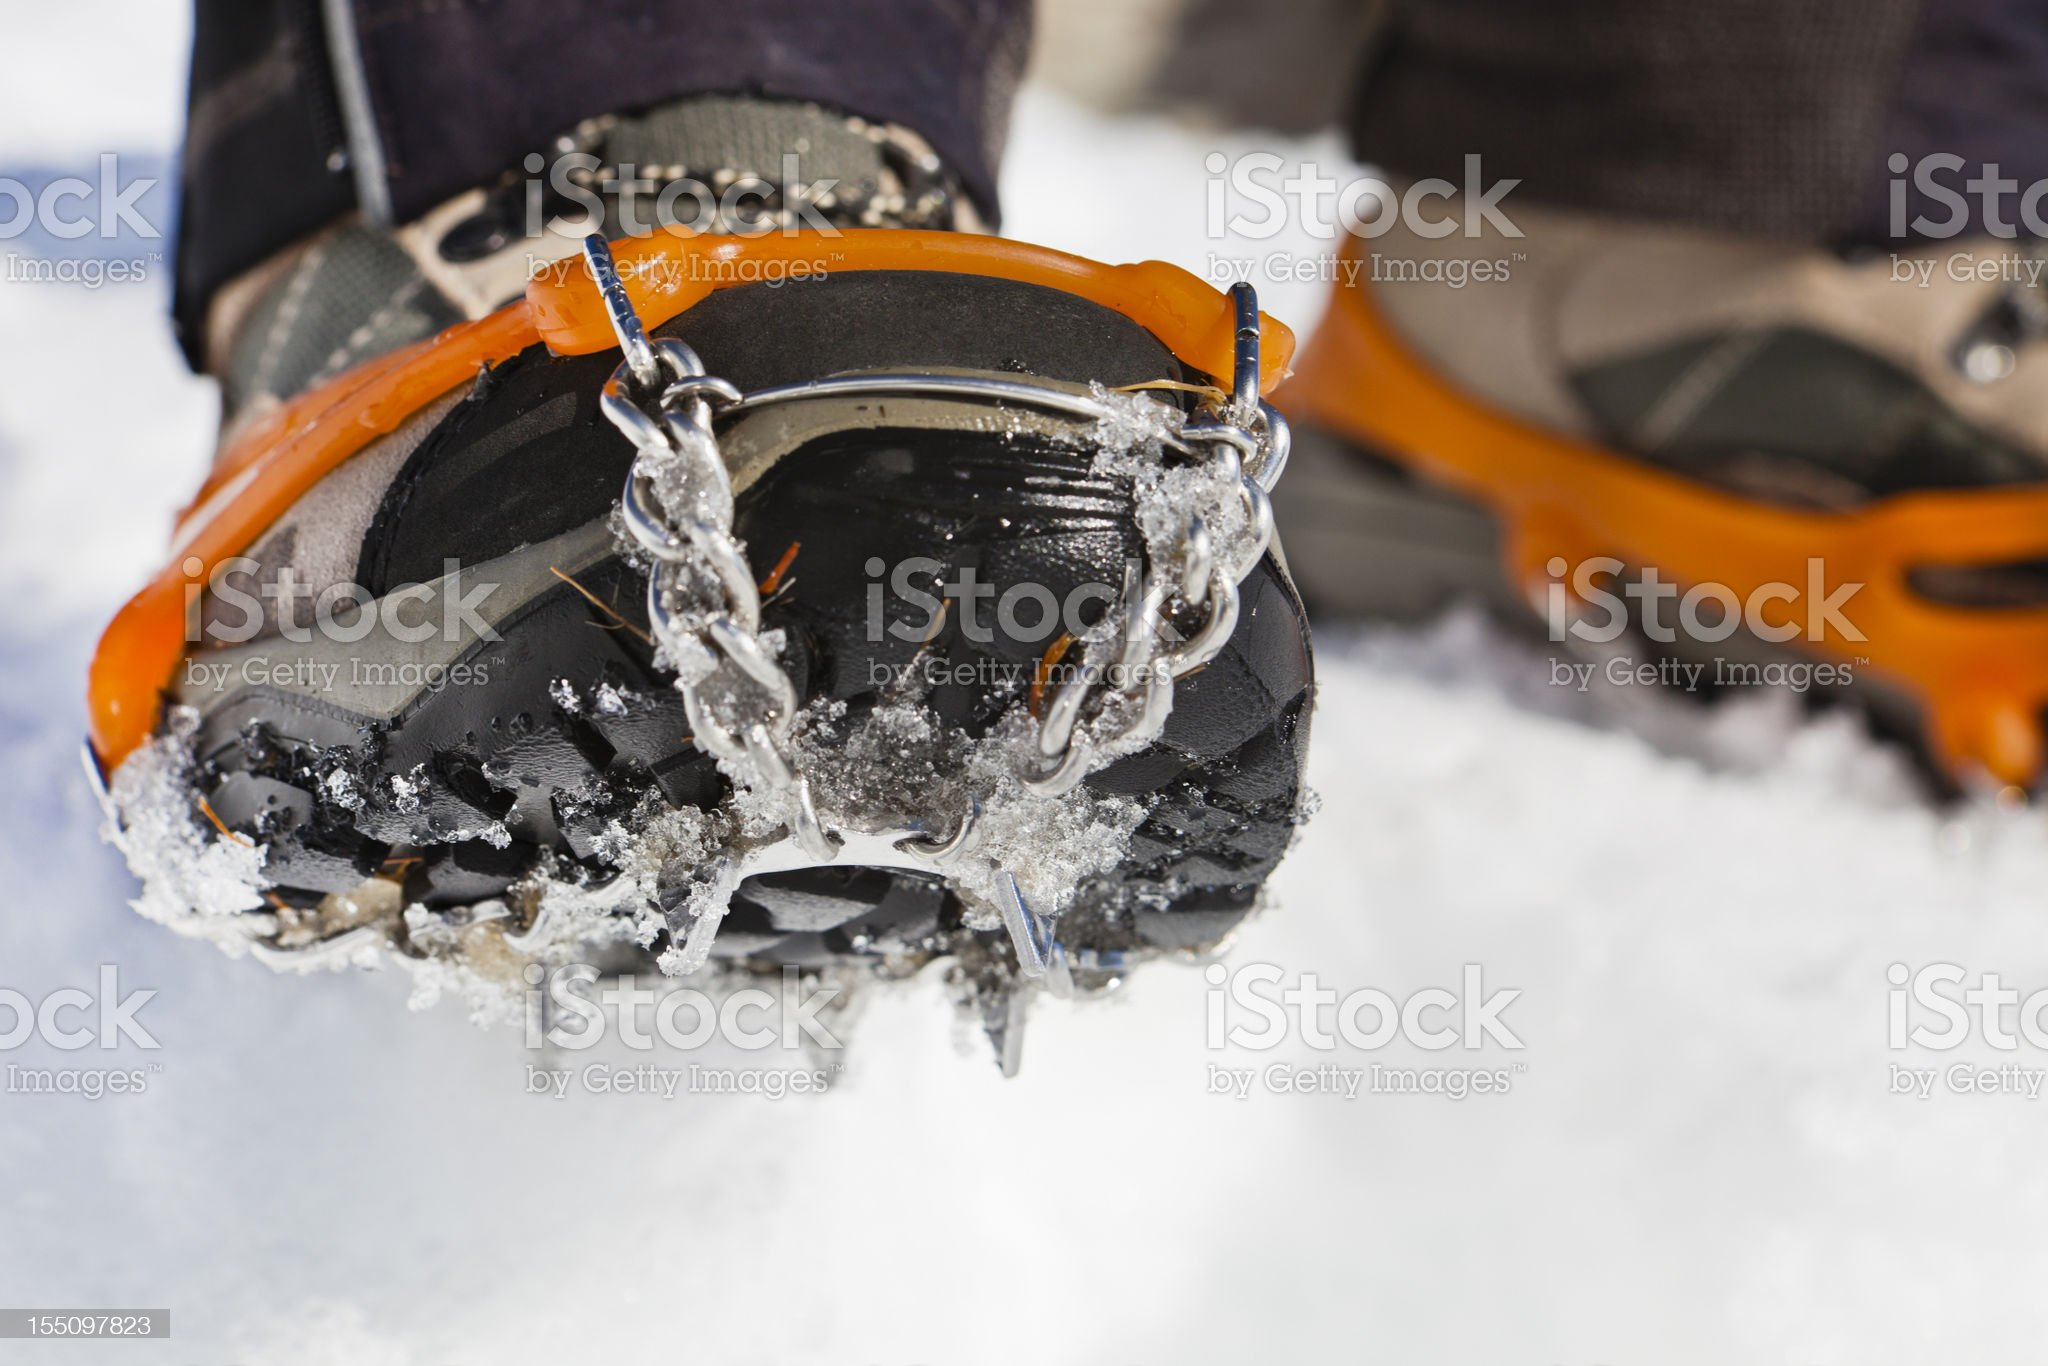 Shoe Chains royalty-free stock photo